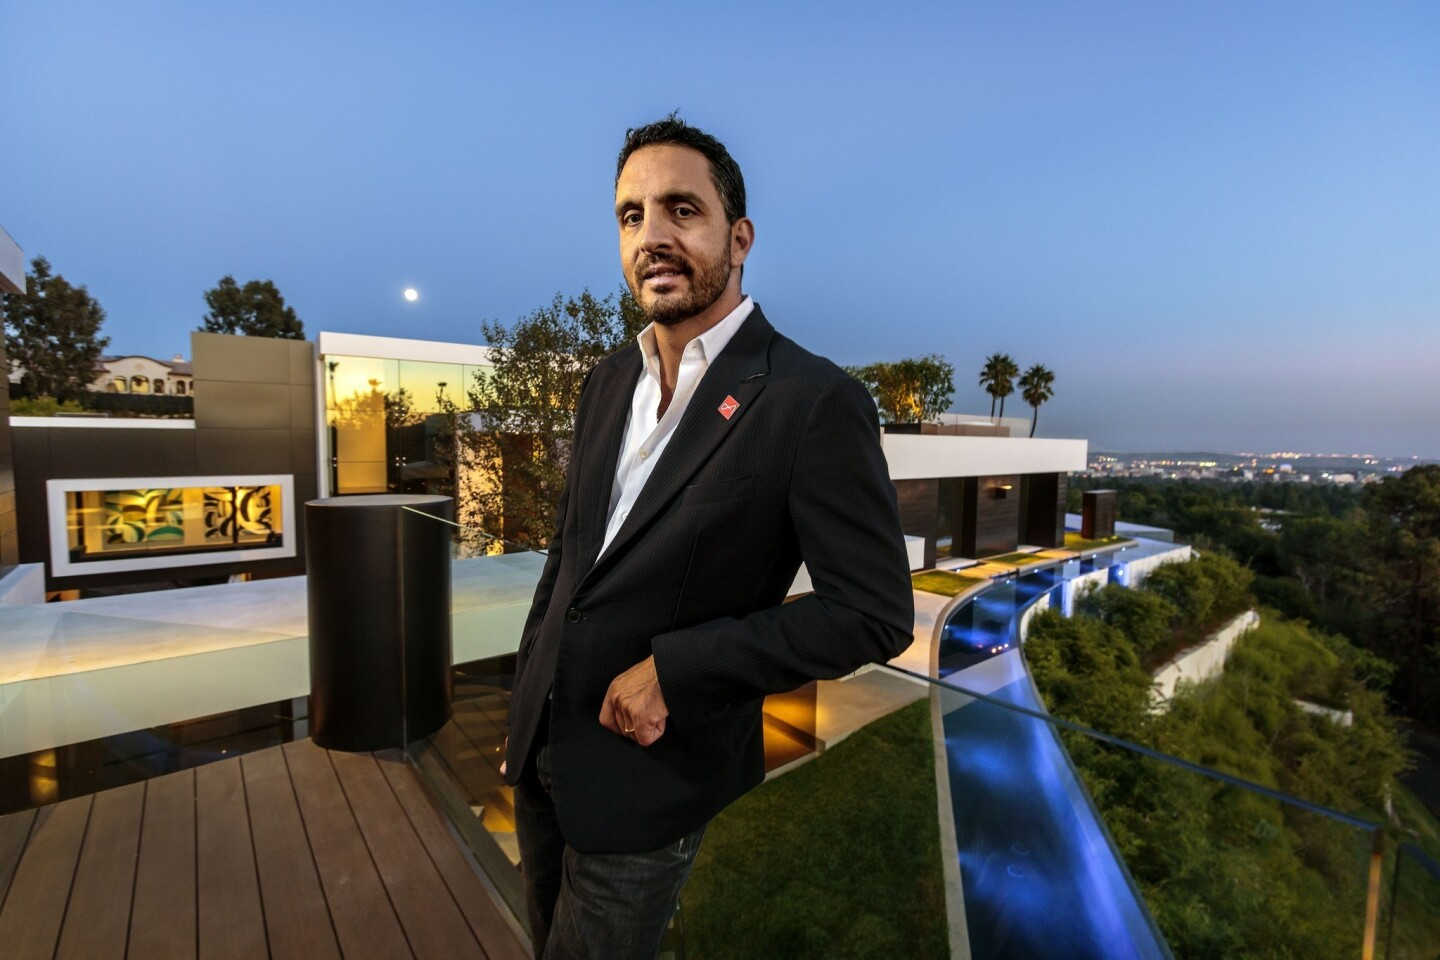 Real estate agent Mauricio Umansky is selling a $36 million Beverly Hills home that is move-in ready. It even includes a $300 putter for the putting green.